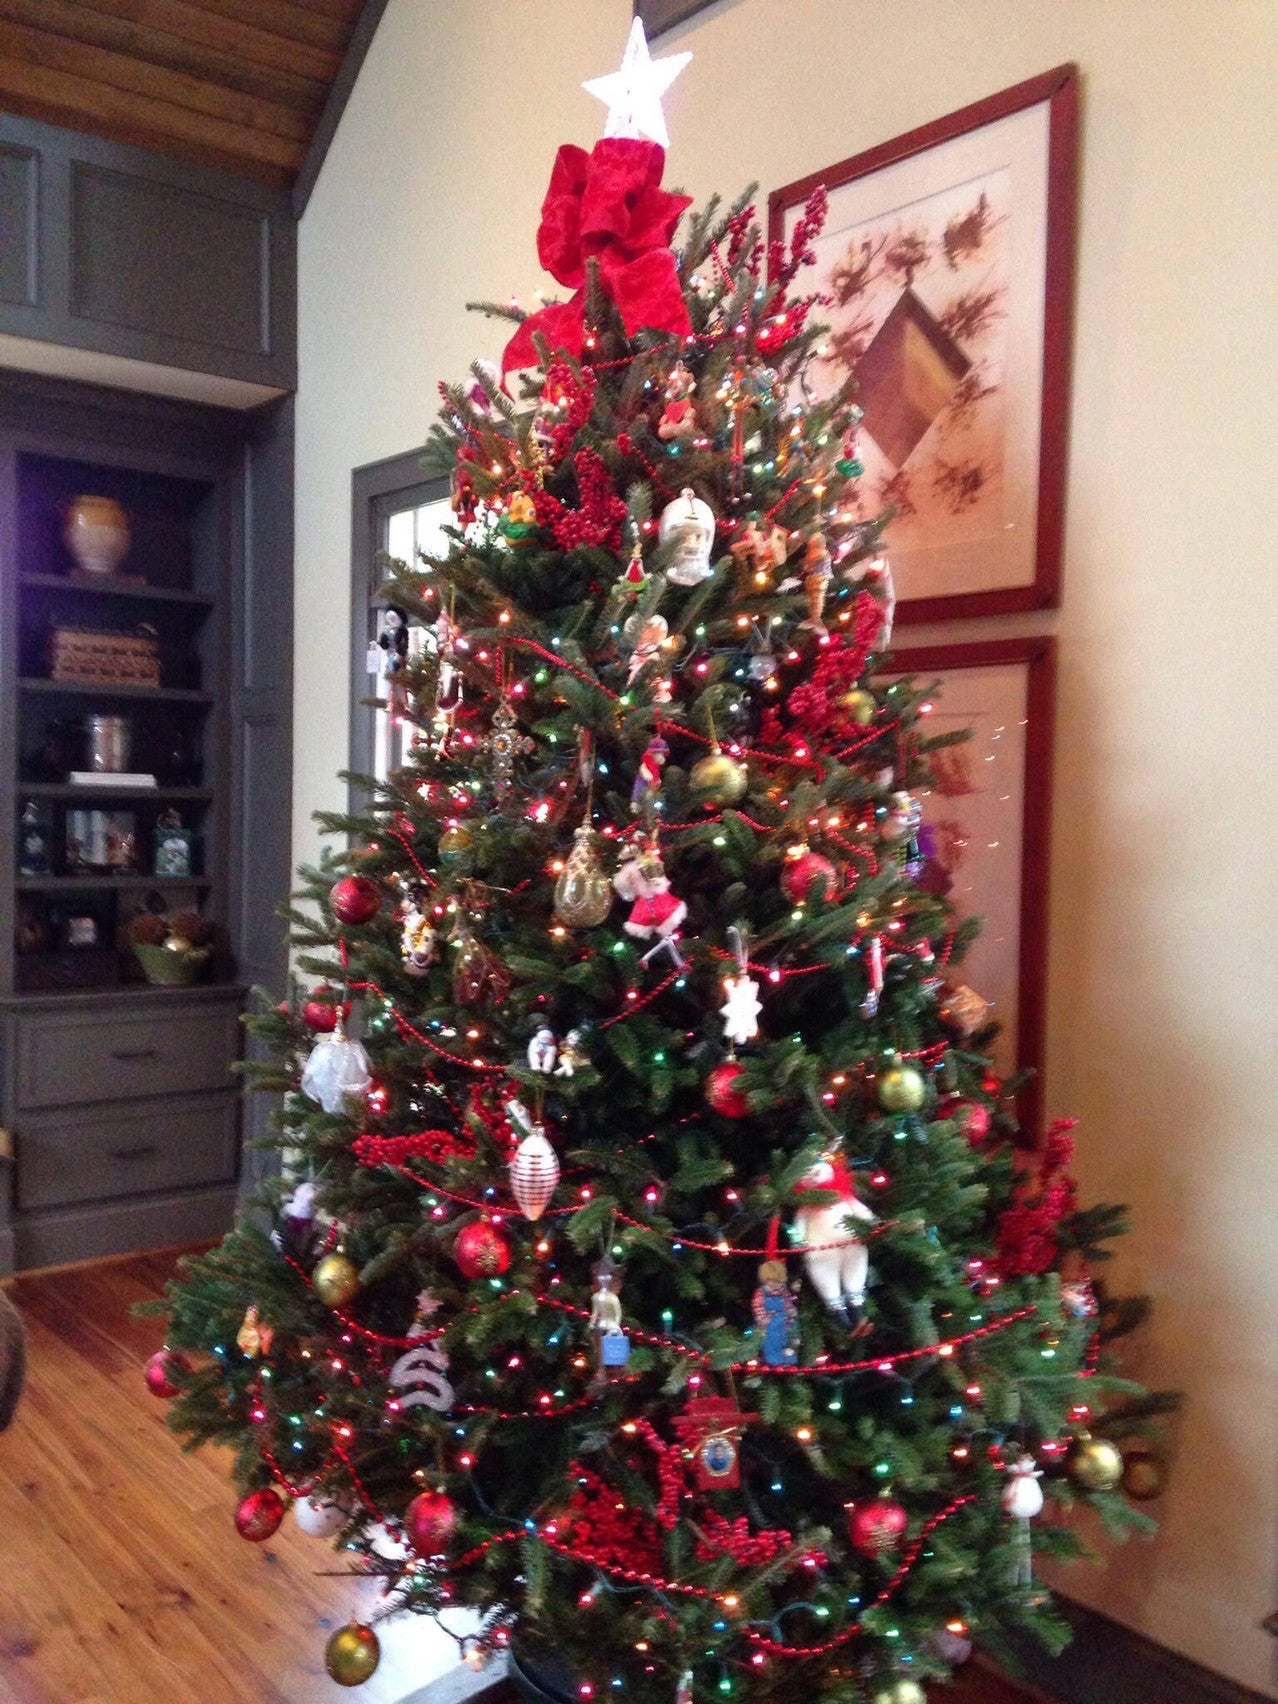 Clements-Christmas-Tree-Fraser-Fir-2015-Nashville-Tennessee-615